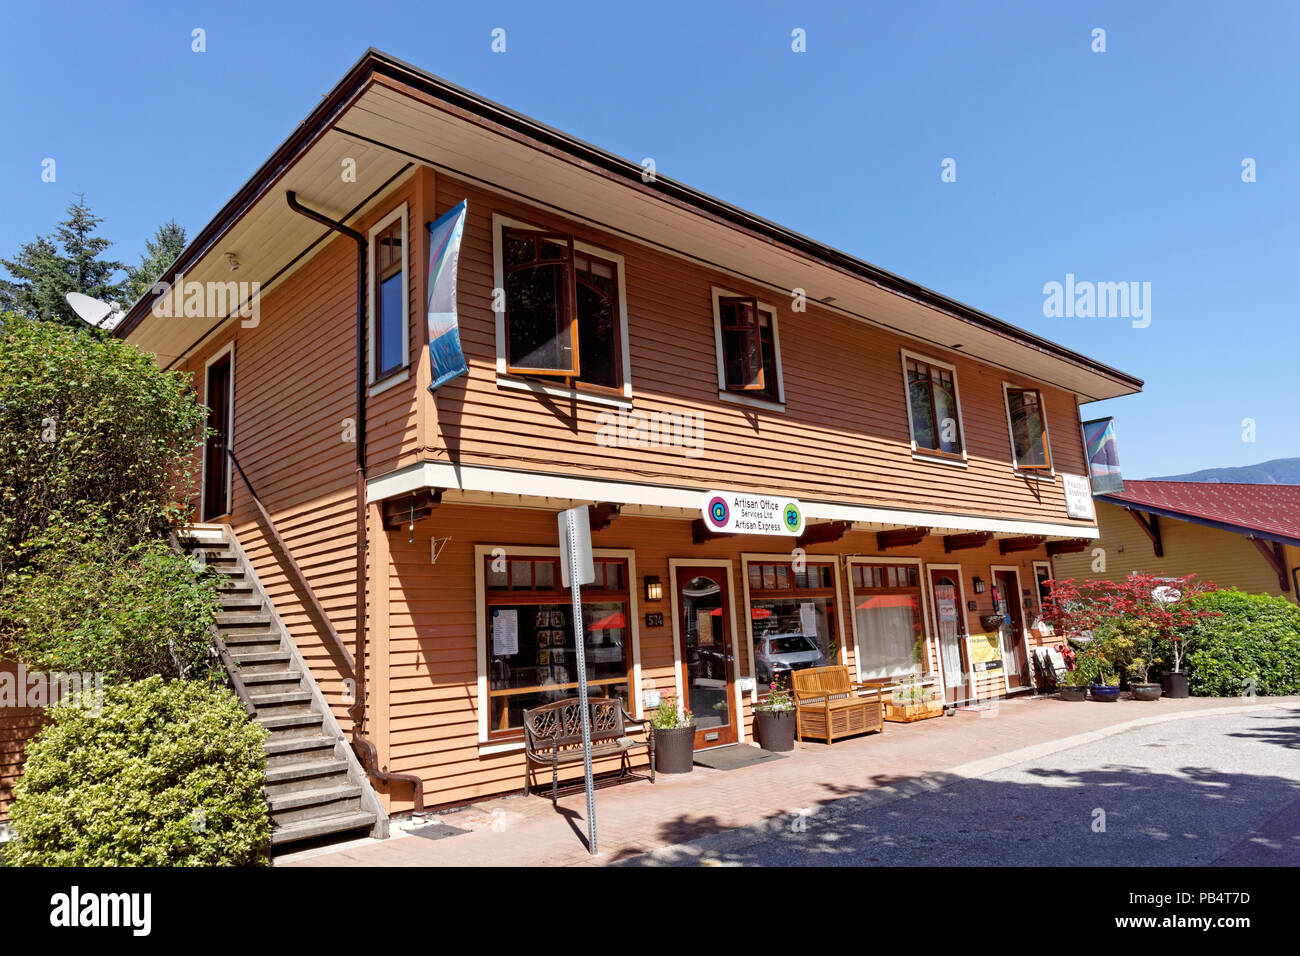 Wooden building with businesses  in Artisan Square on Bowen Island near Vancouver, British Columbia, Canada - Stock Image